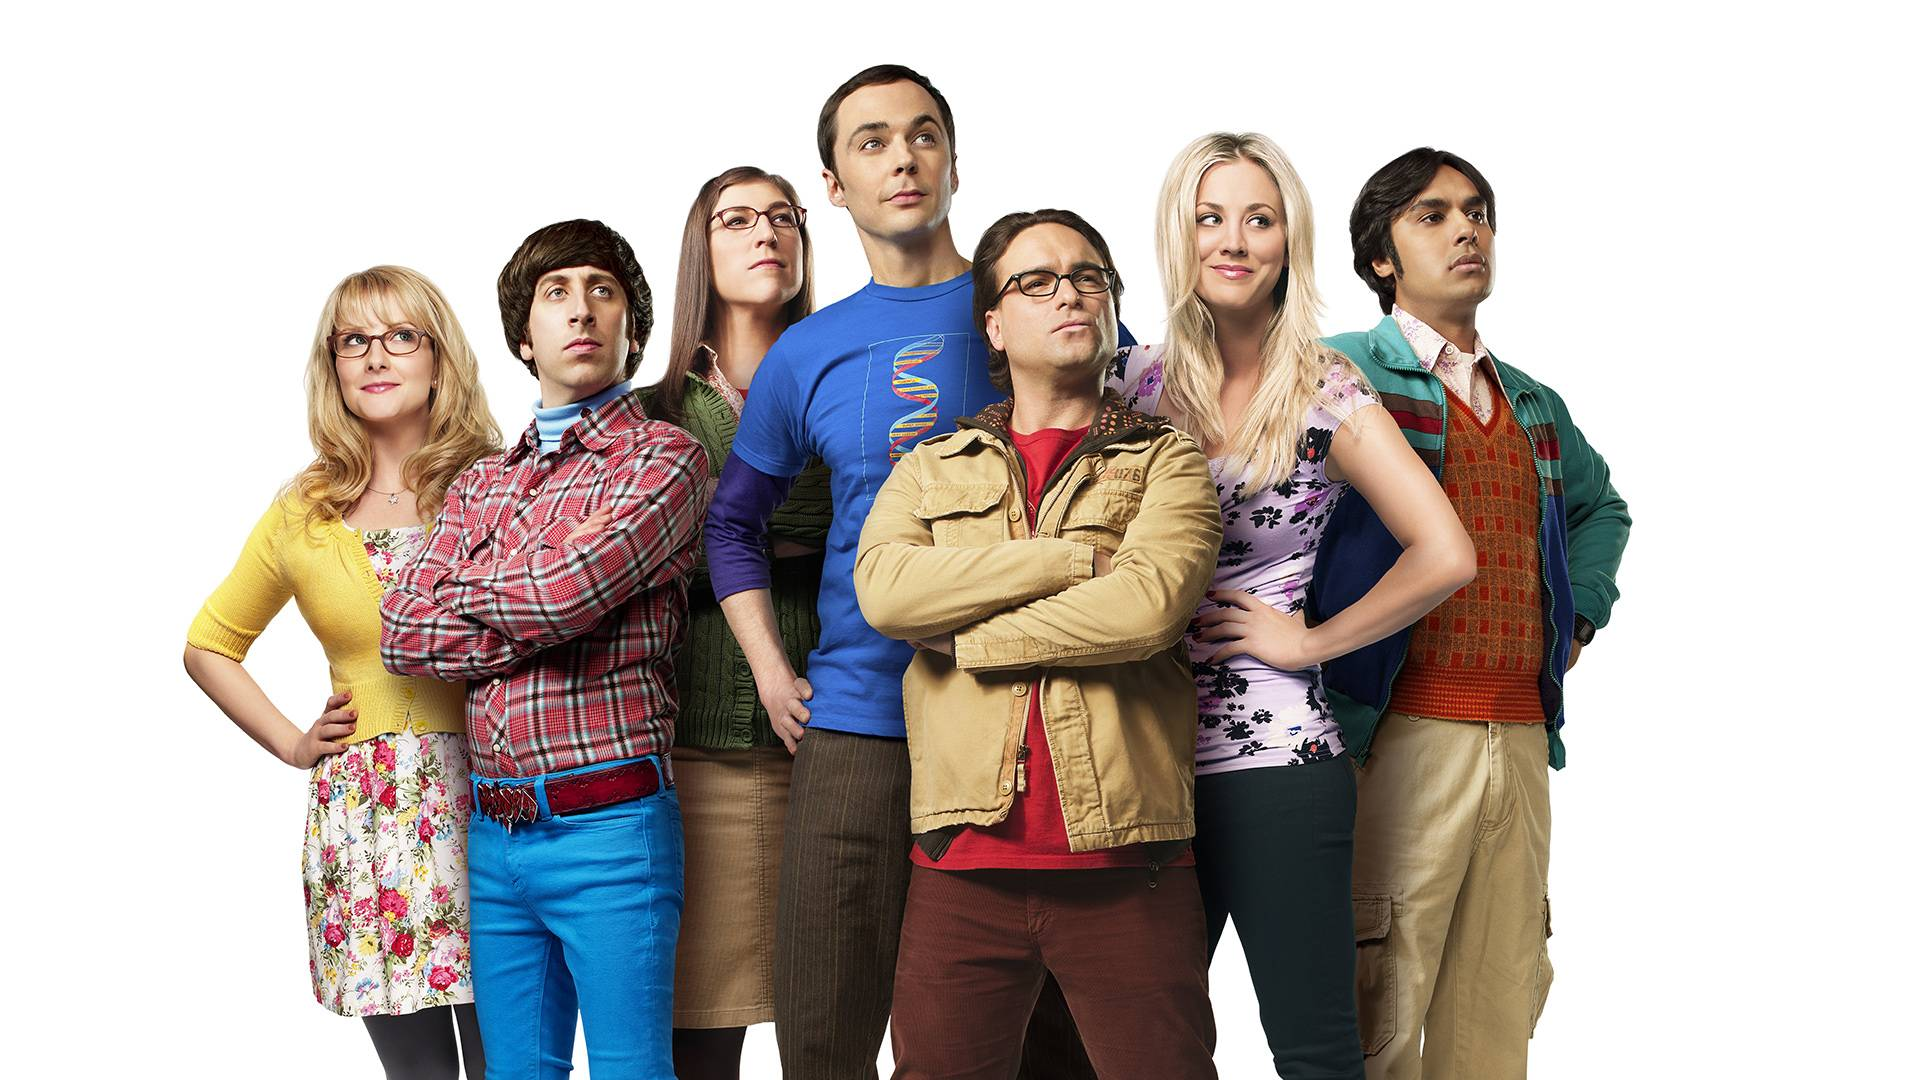 Cast of The Big Bang Theory | Wallpapers HD